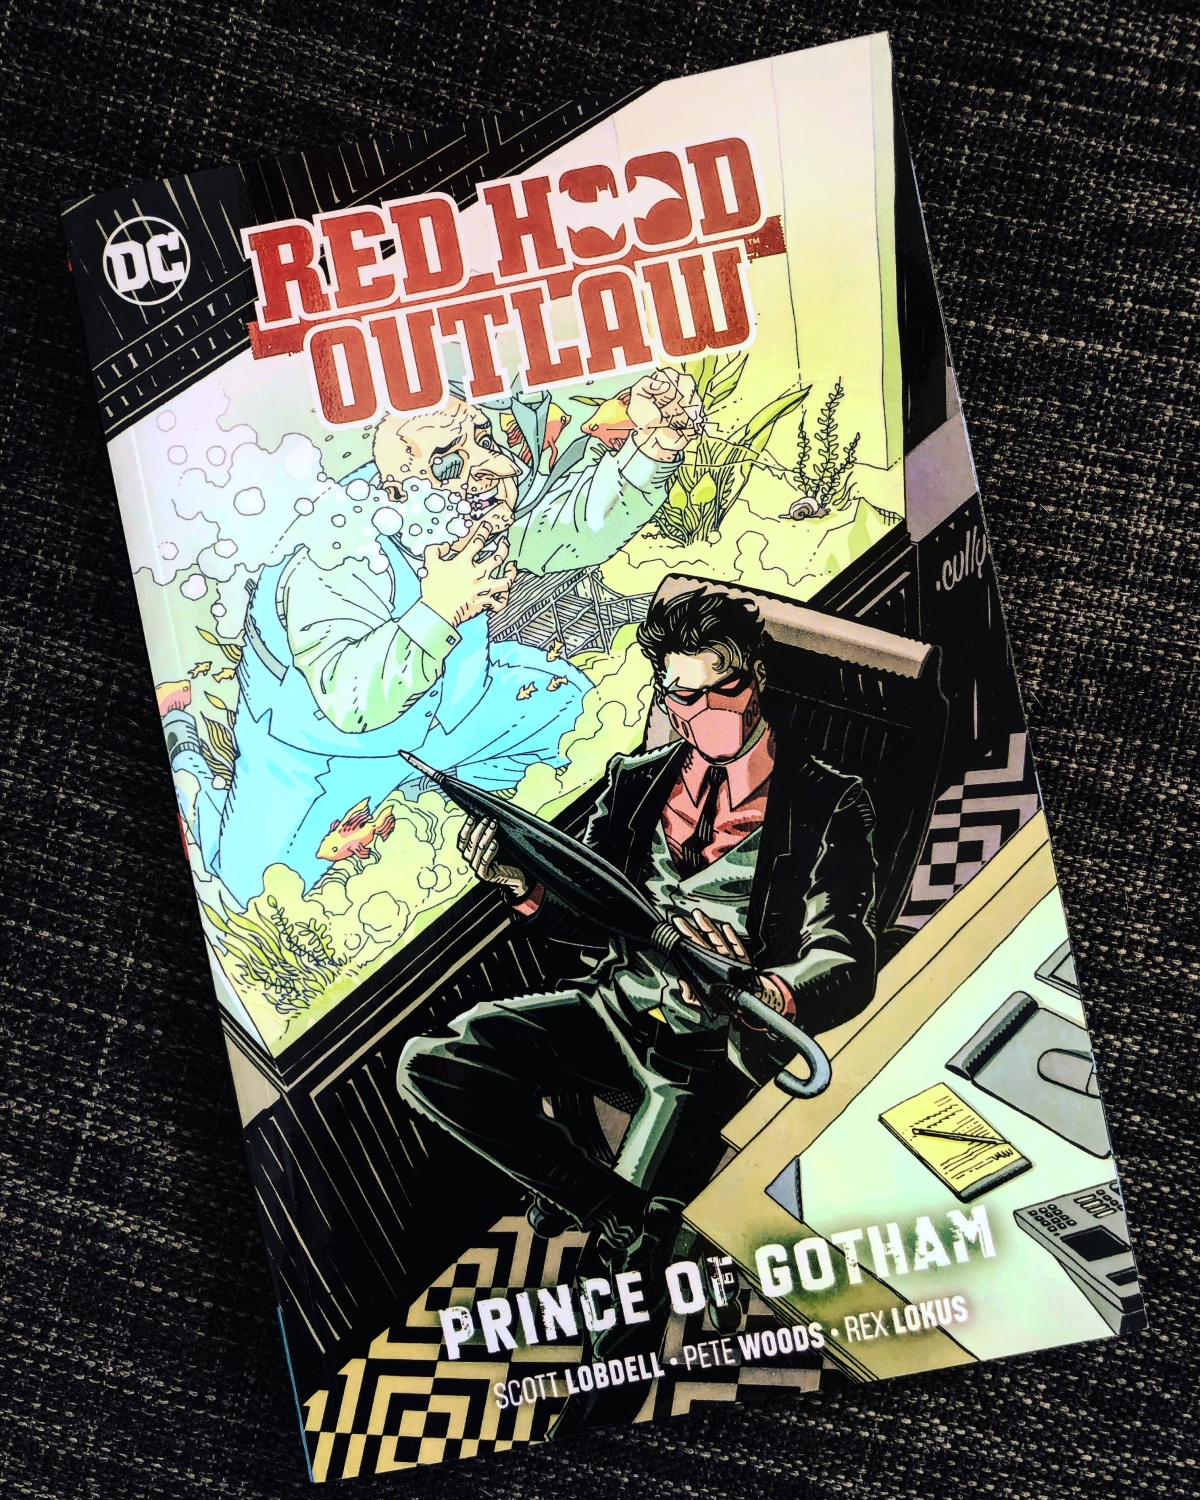 Red Hood: Outlaw Vol. 2: Prince of Gotham |Review